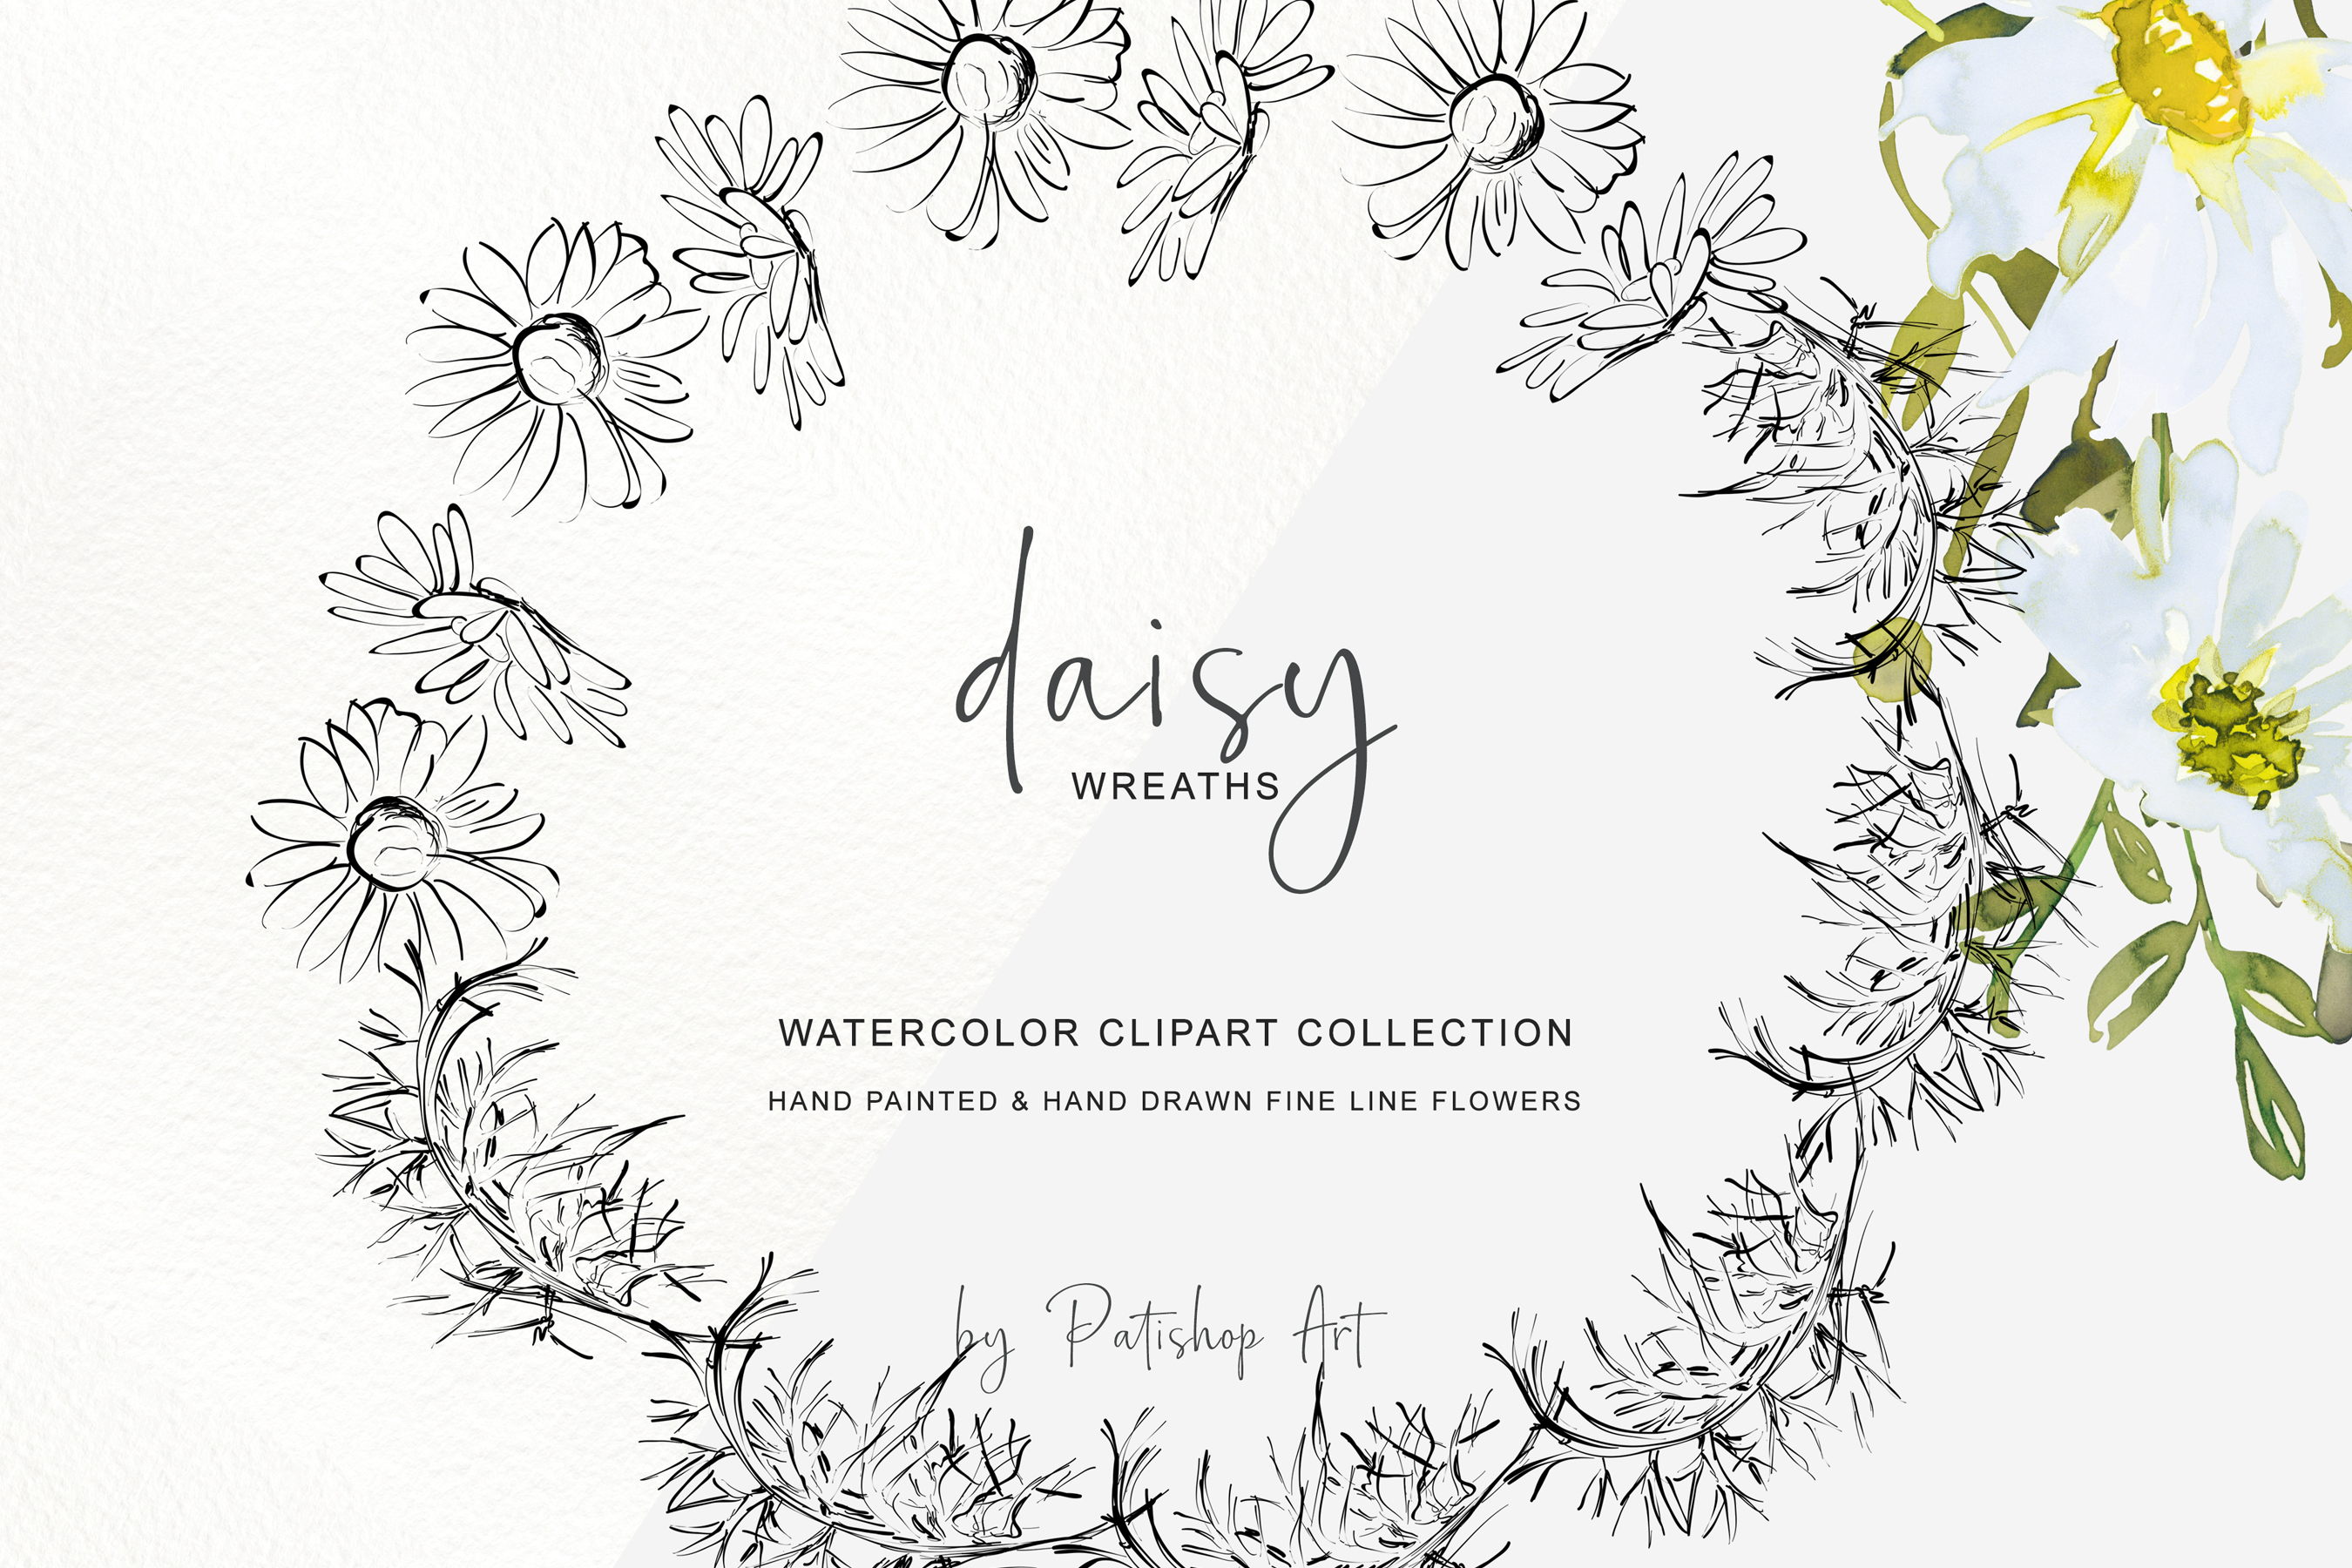 Watercolor Daisy Wreath Clip Art example image 5